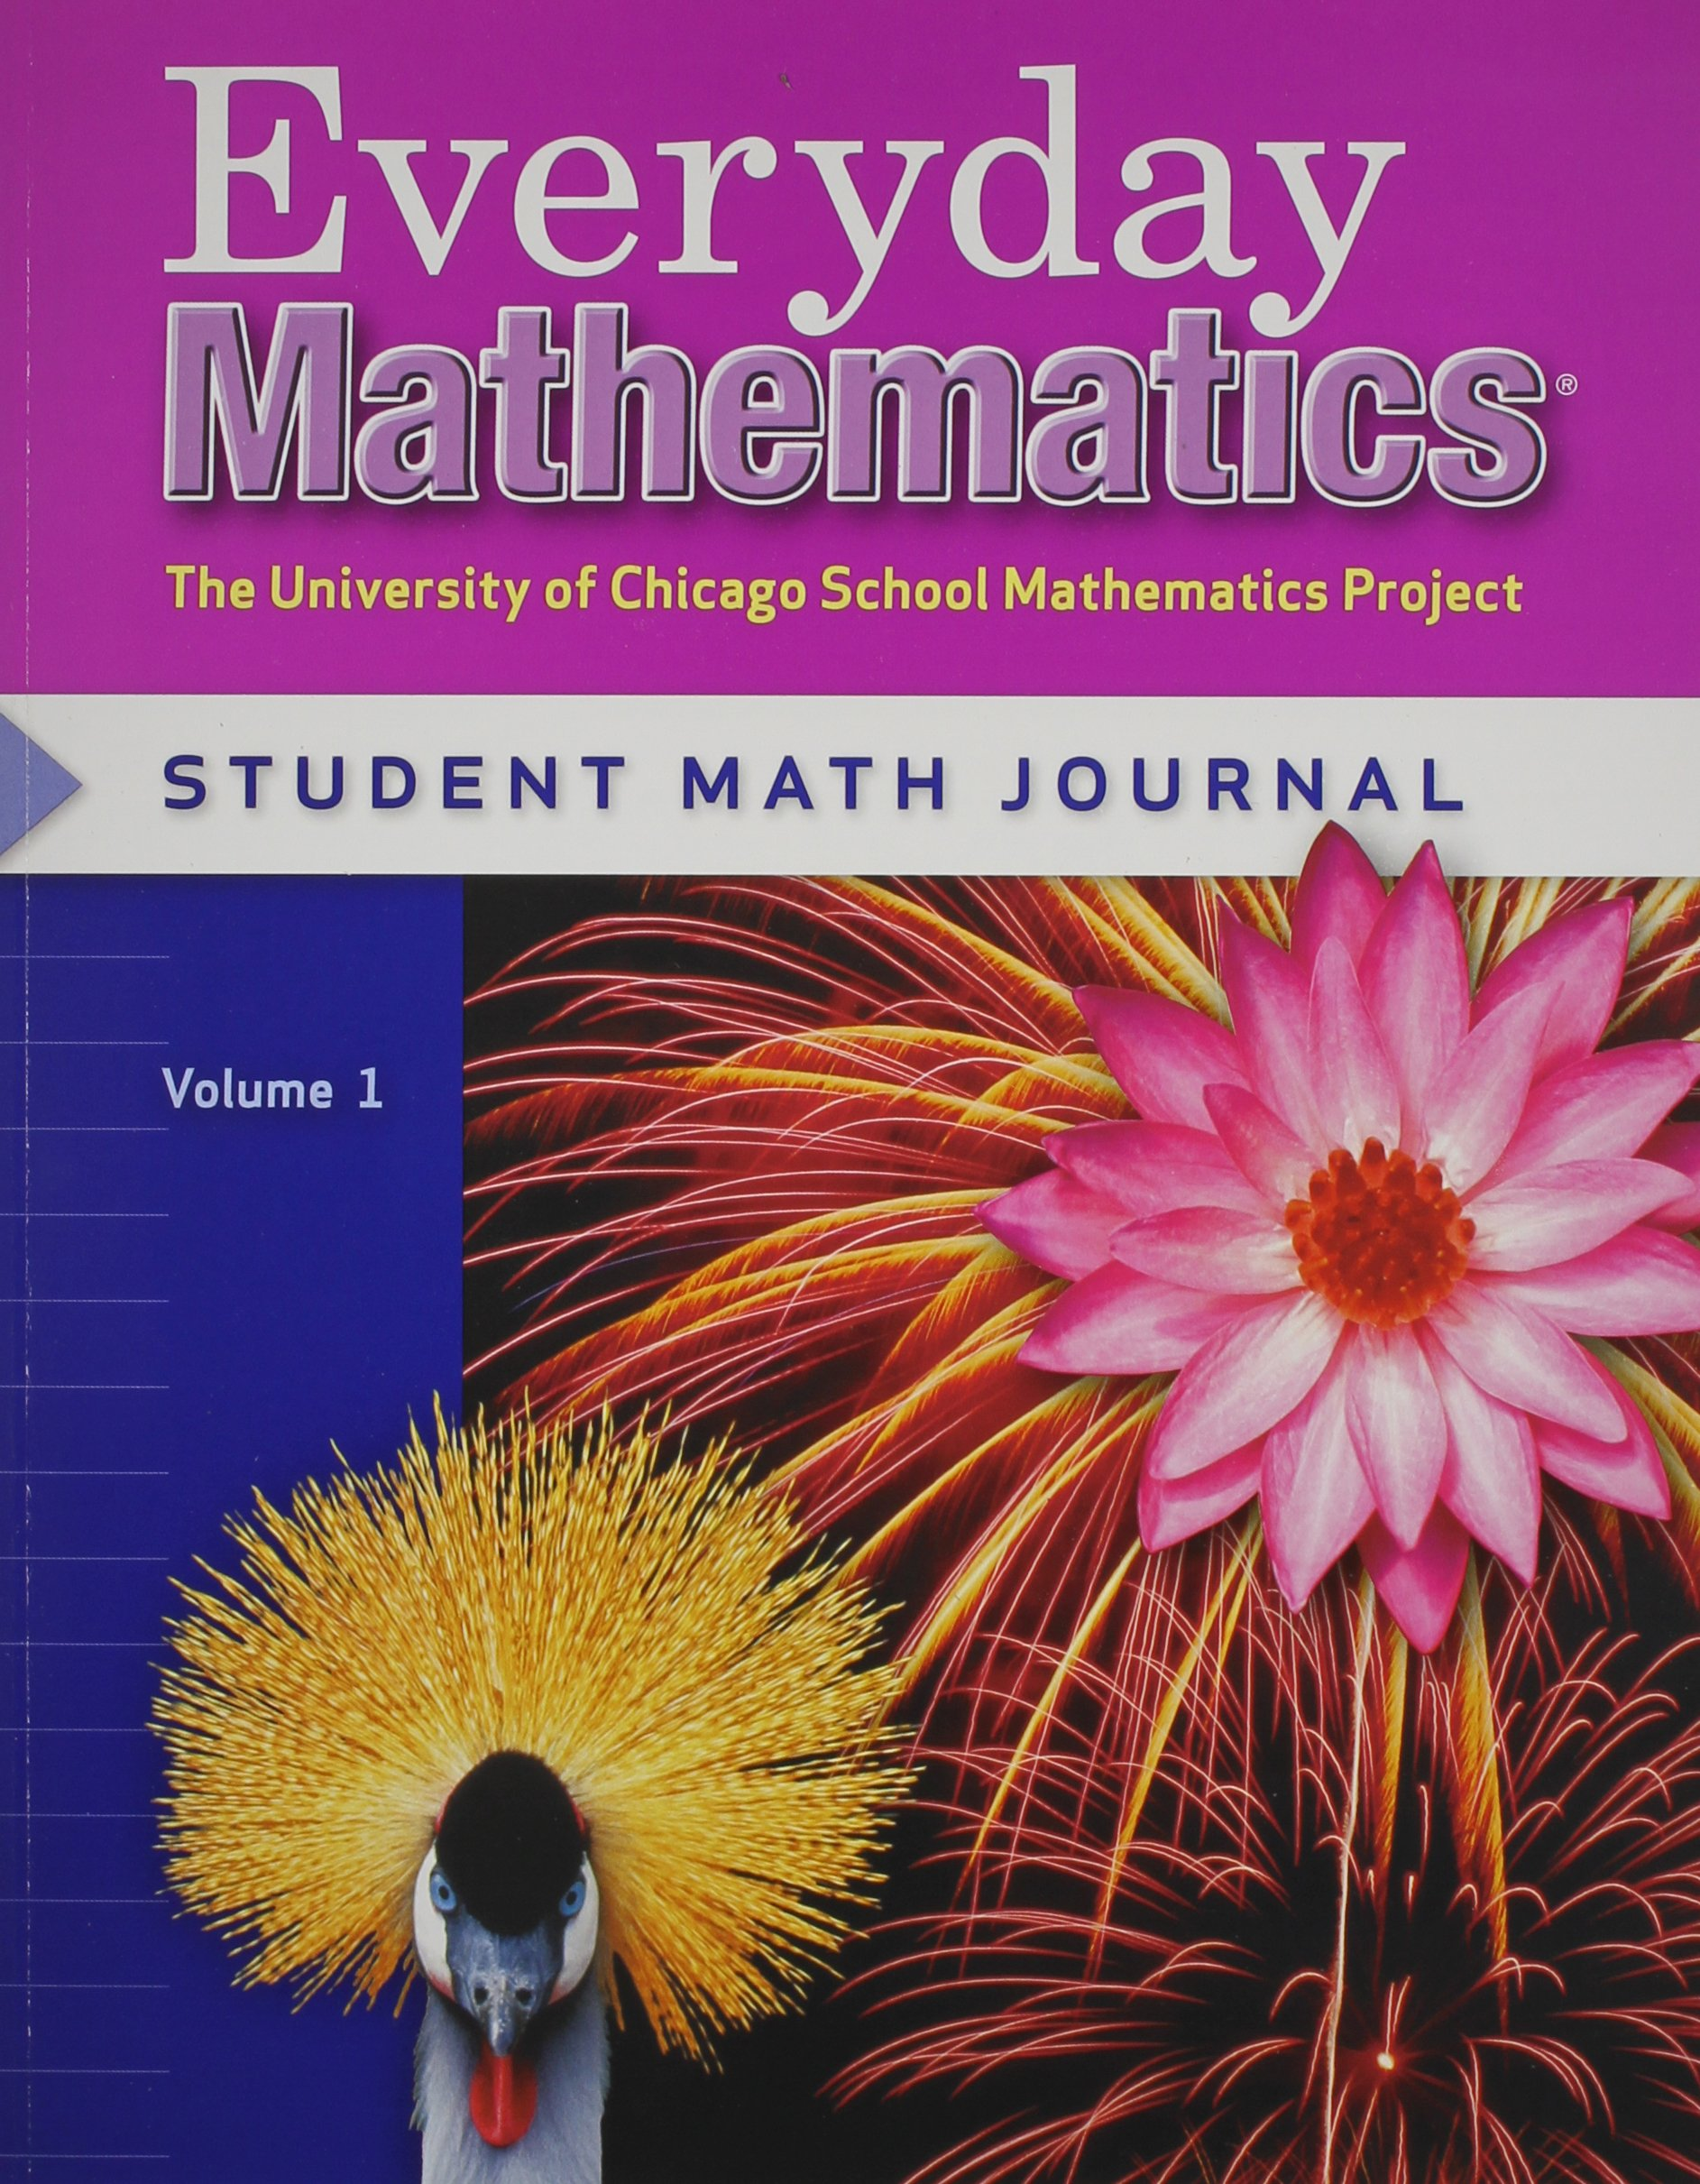 Free Worksheet Everyday Mathematics Worksheets everyday mathematics grade 4 student math journal volume 1 max bell andy isaacs john bretzlauf james mcbride amy dillard